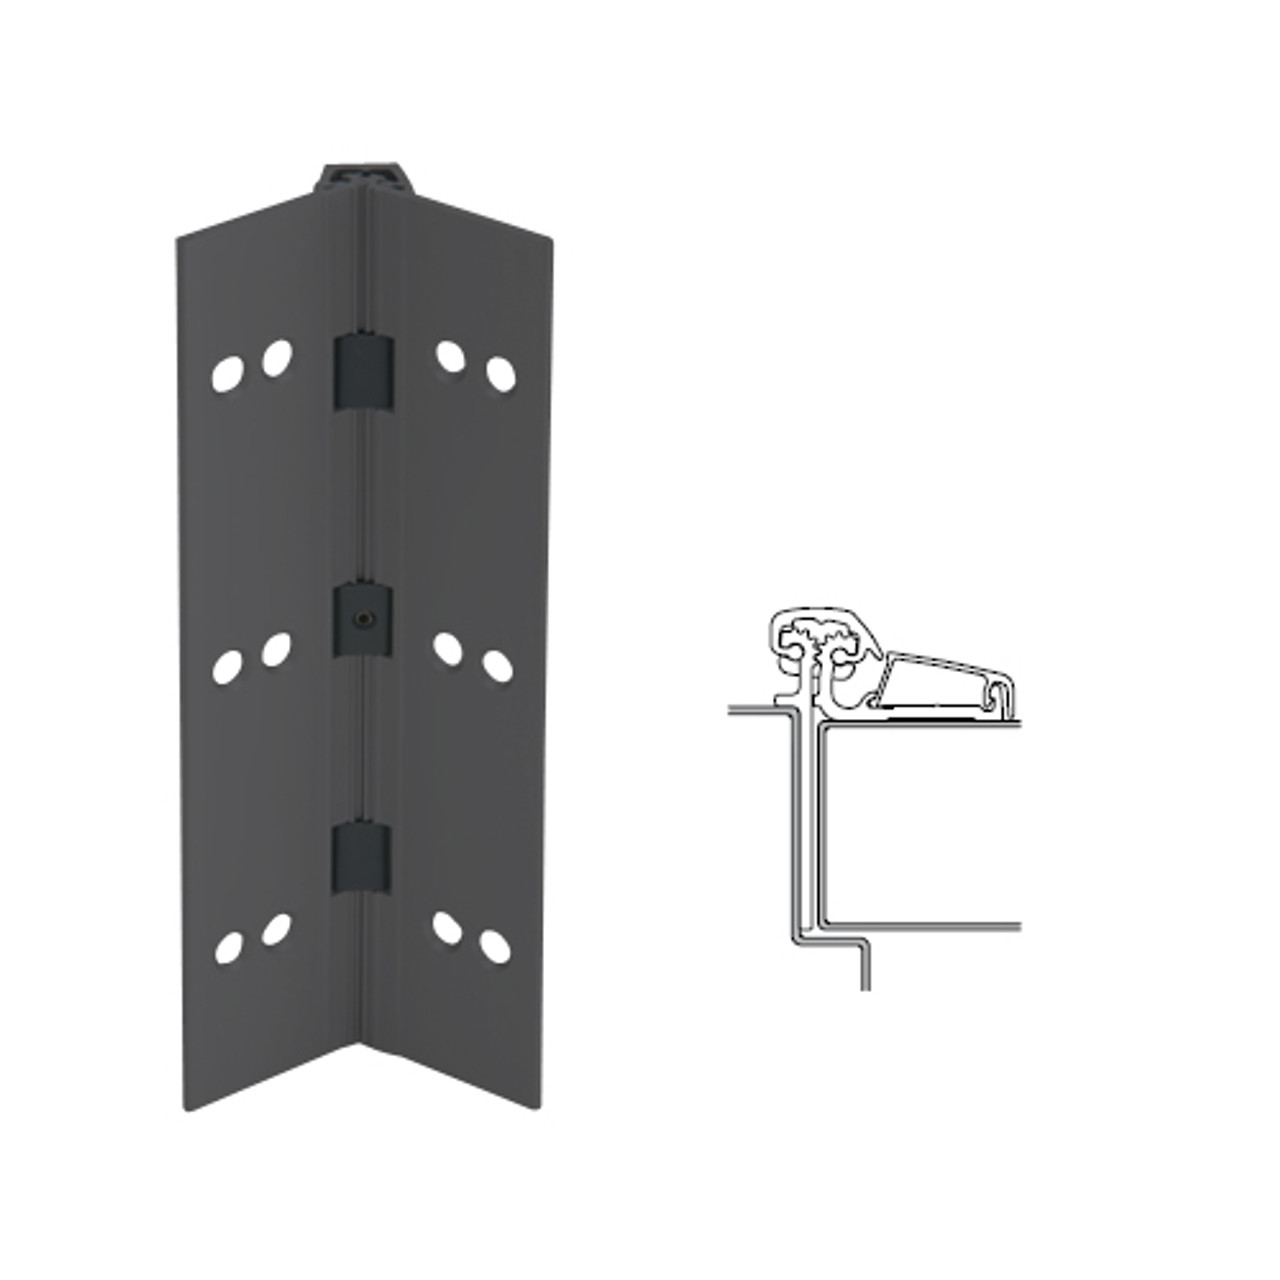 054XY-315AN-85-SECHM IVES Adjustable Half Surface Continuous Geared Hinges with Security Screws - Hex Pin Drive in Anodized Black